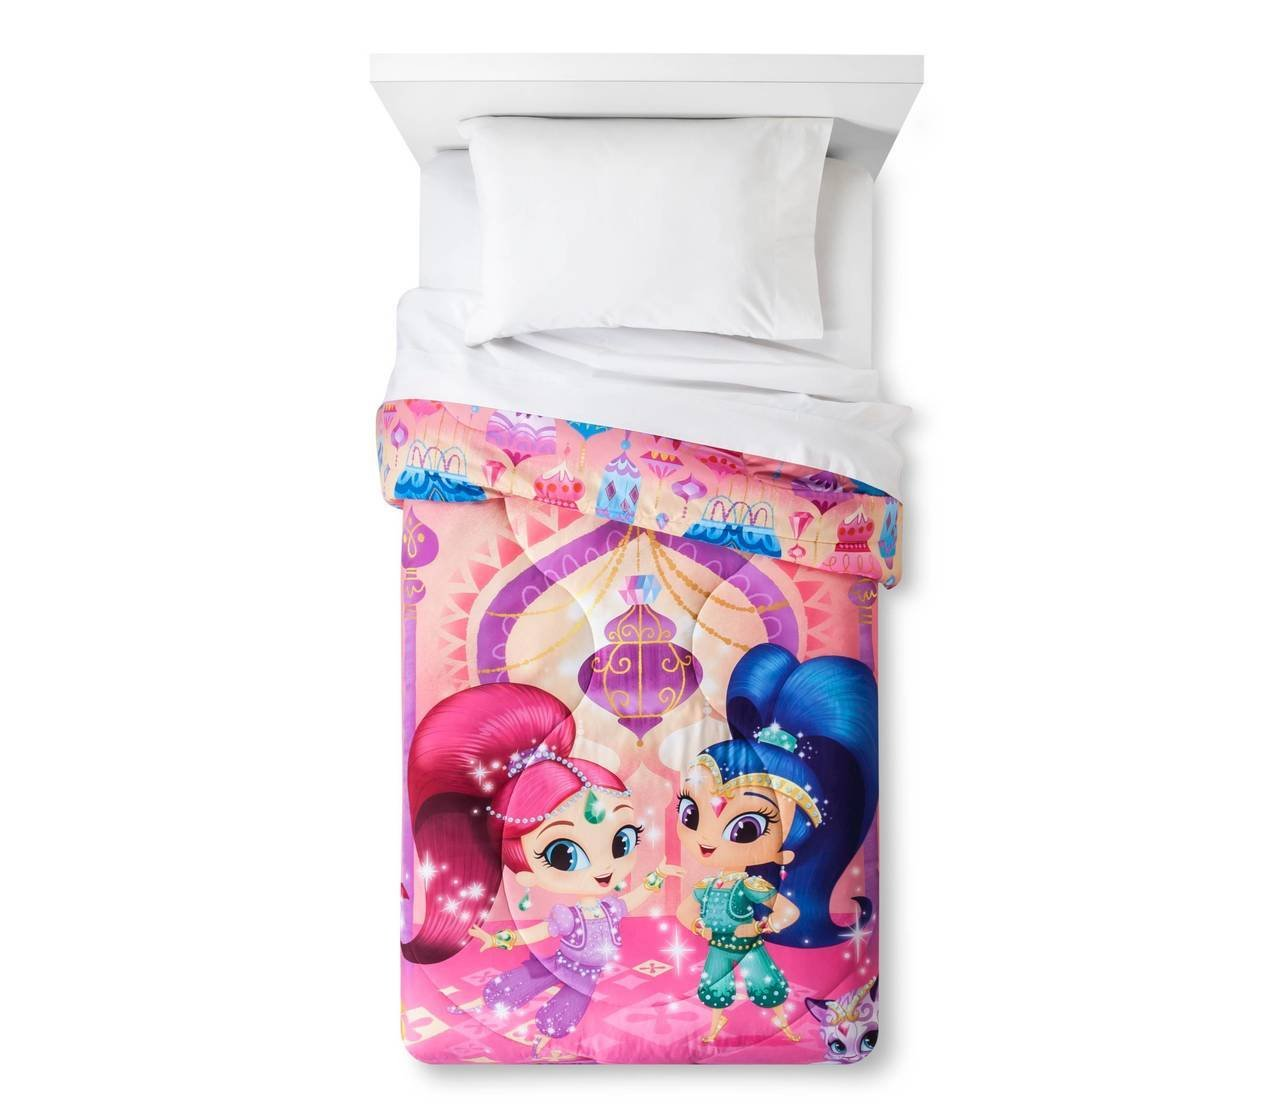 Nickelodeon Shimmer and Shine Twin Comforter